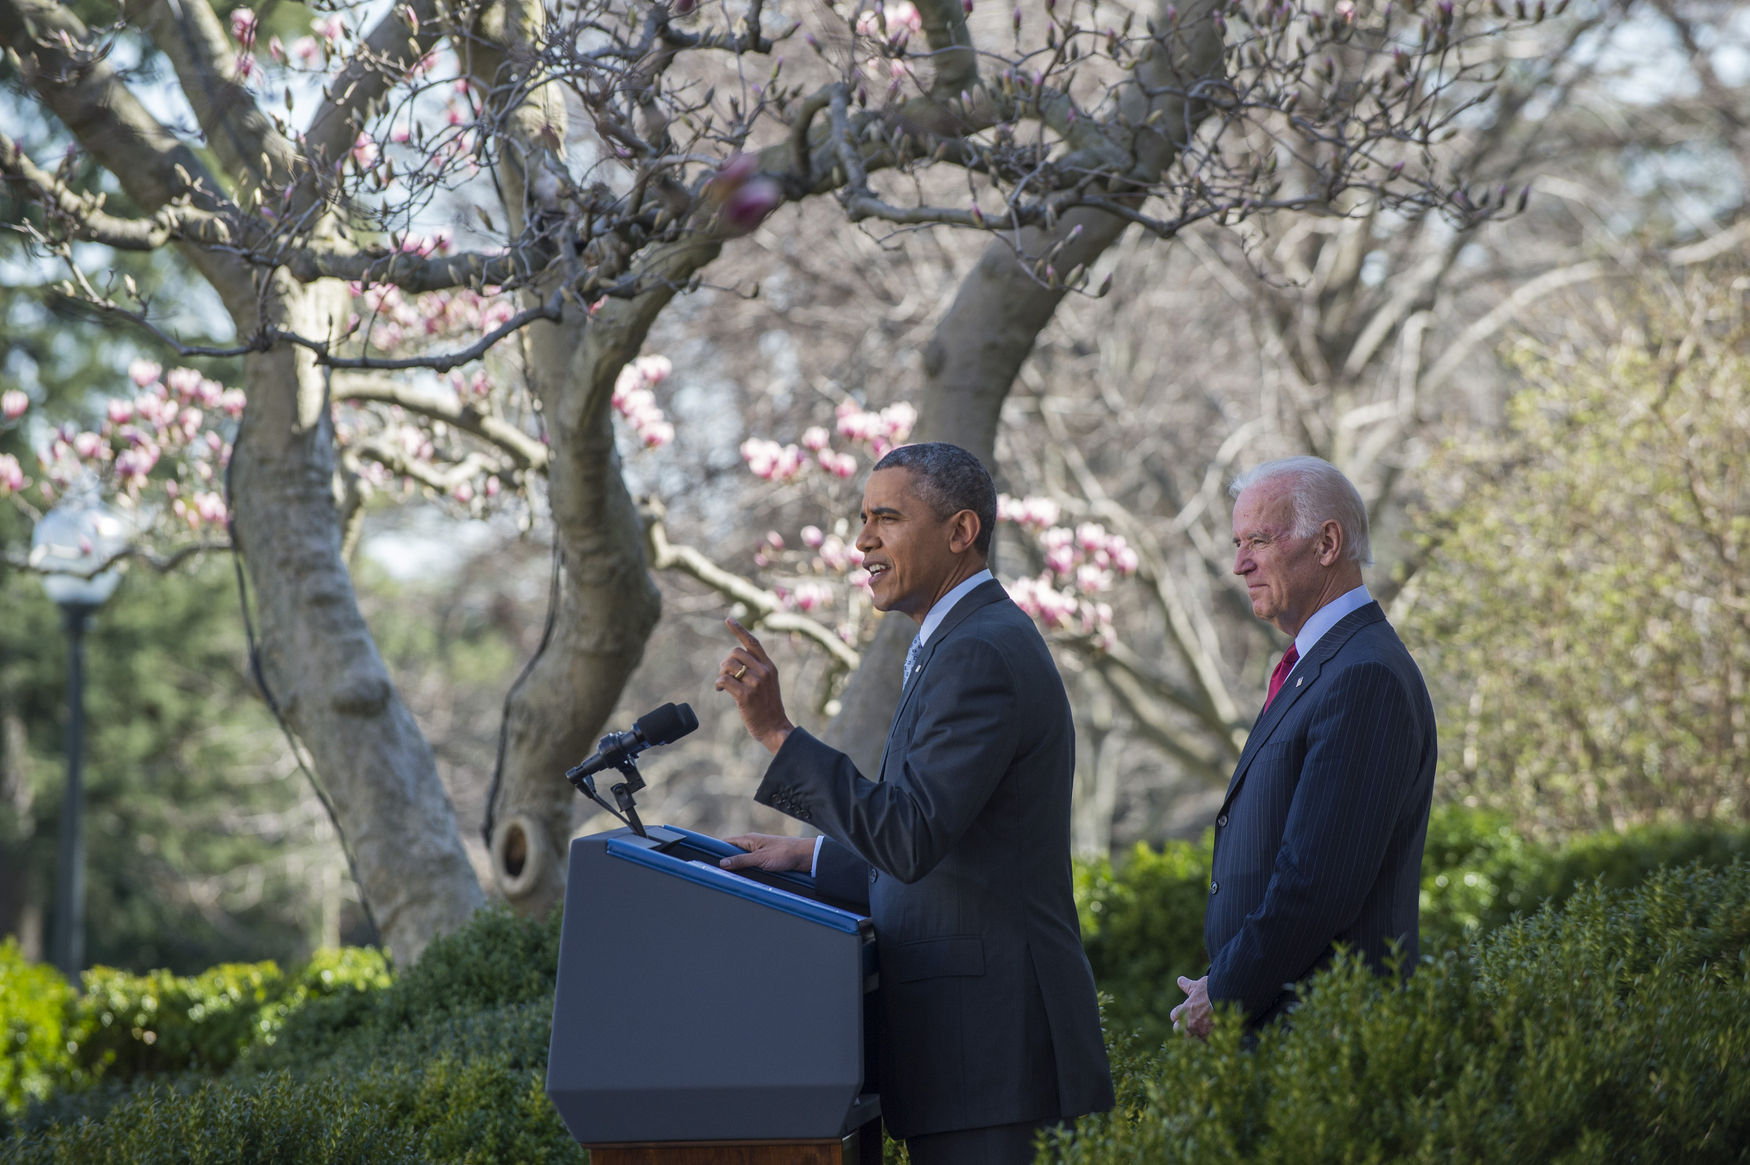 President Barack Obama with Vice-President Joe Biden announces that 7.1 million peoplee have signed up for the Affordable Care Act, in the Rose Garden of the White House